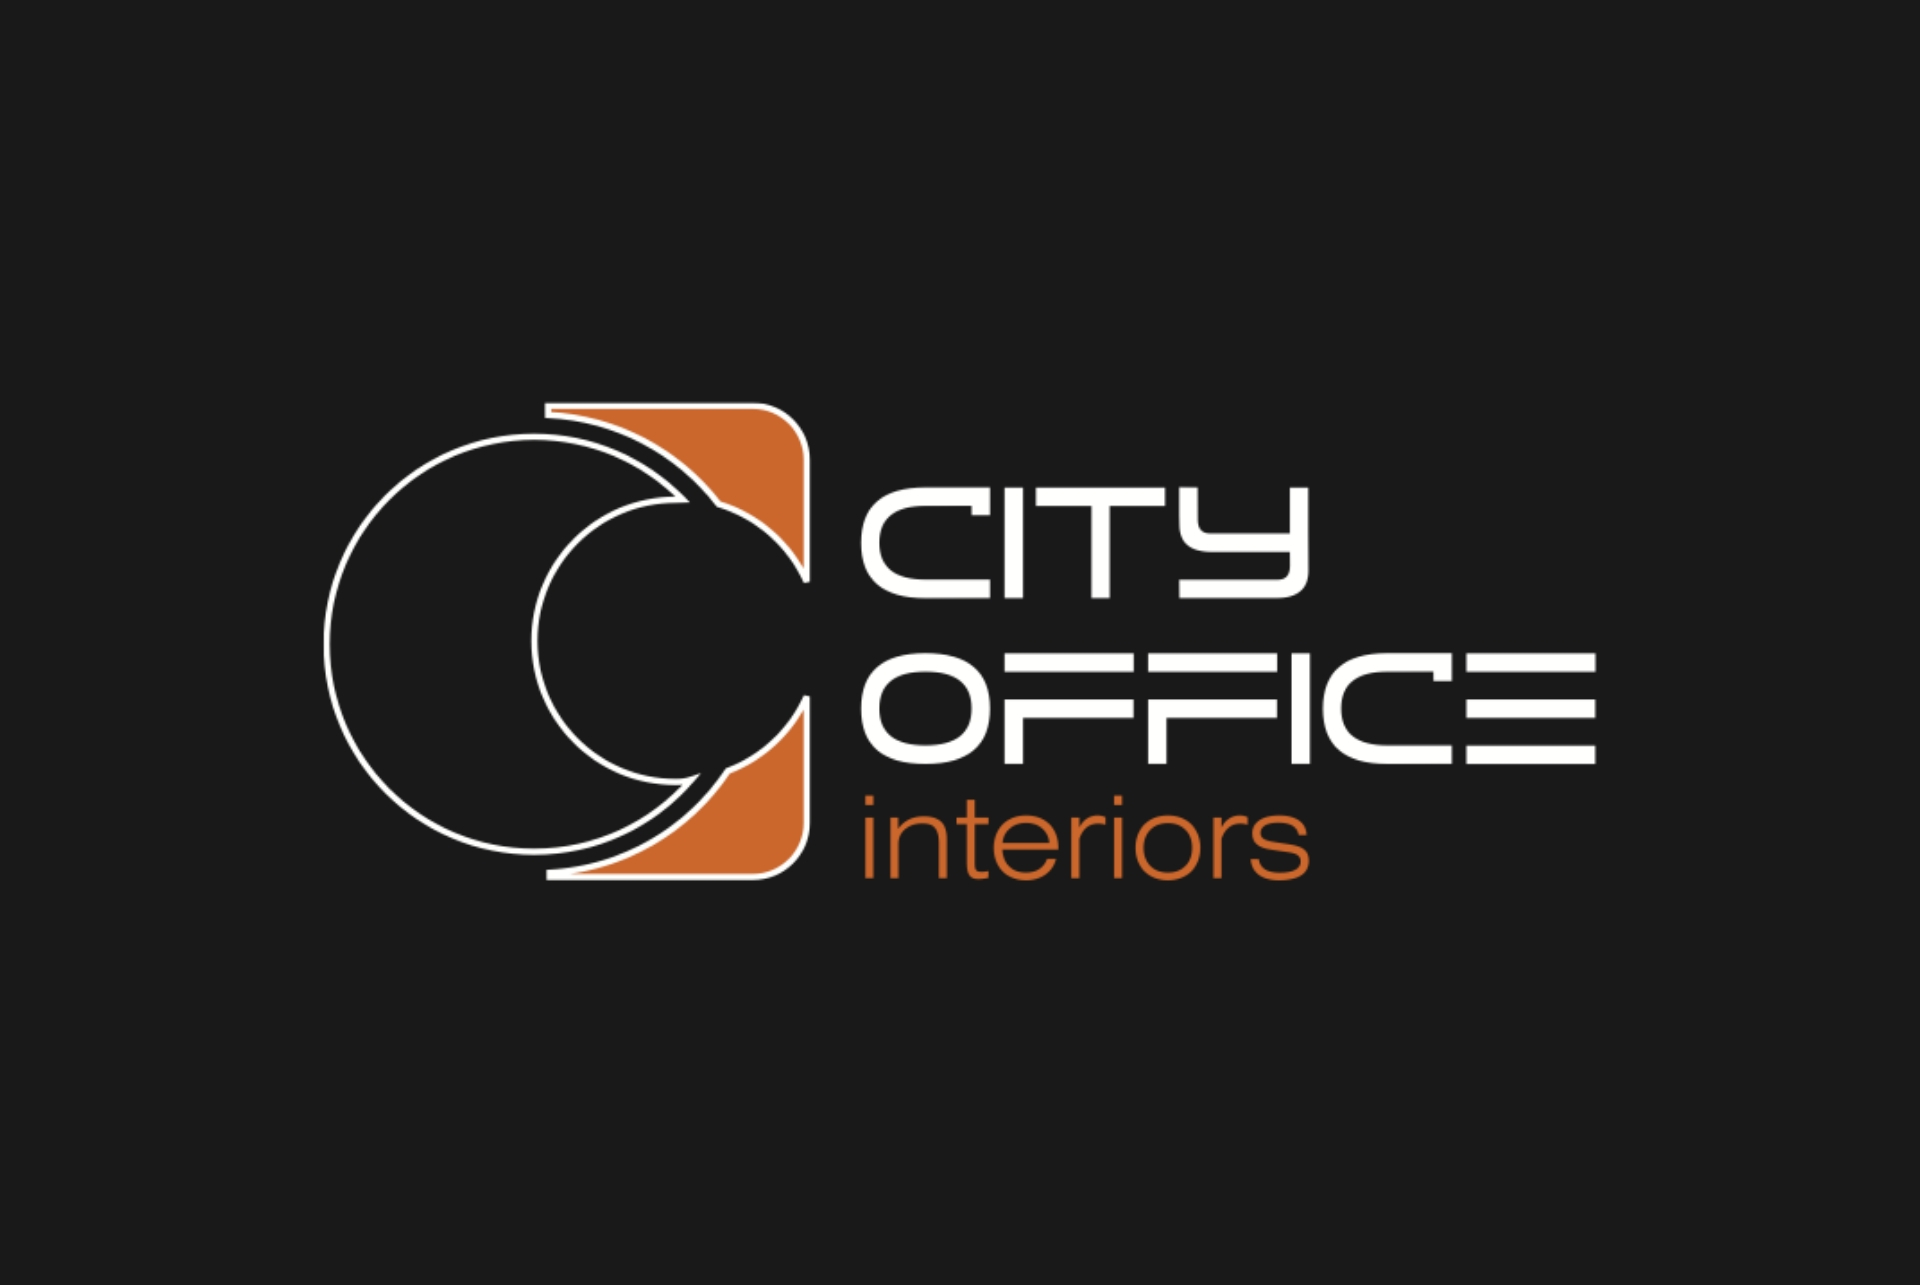 City Office Interiors